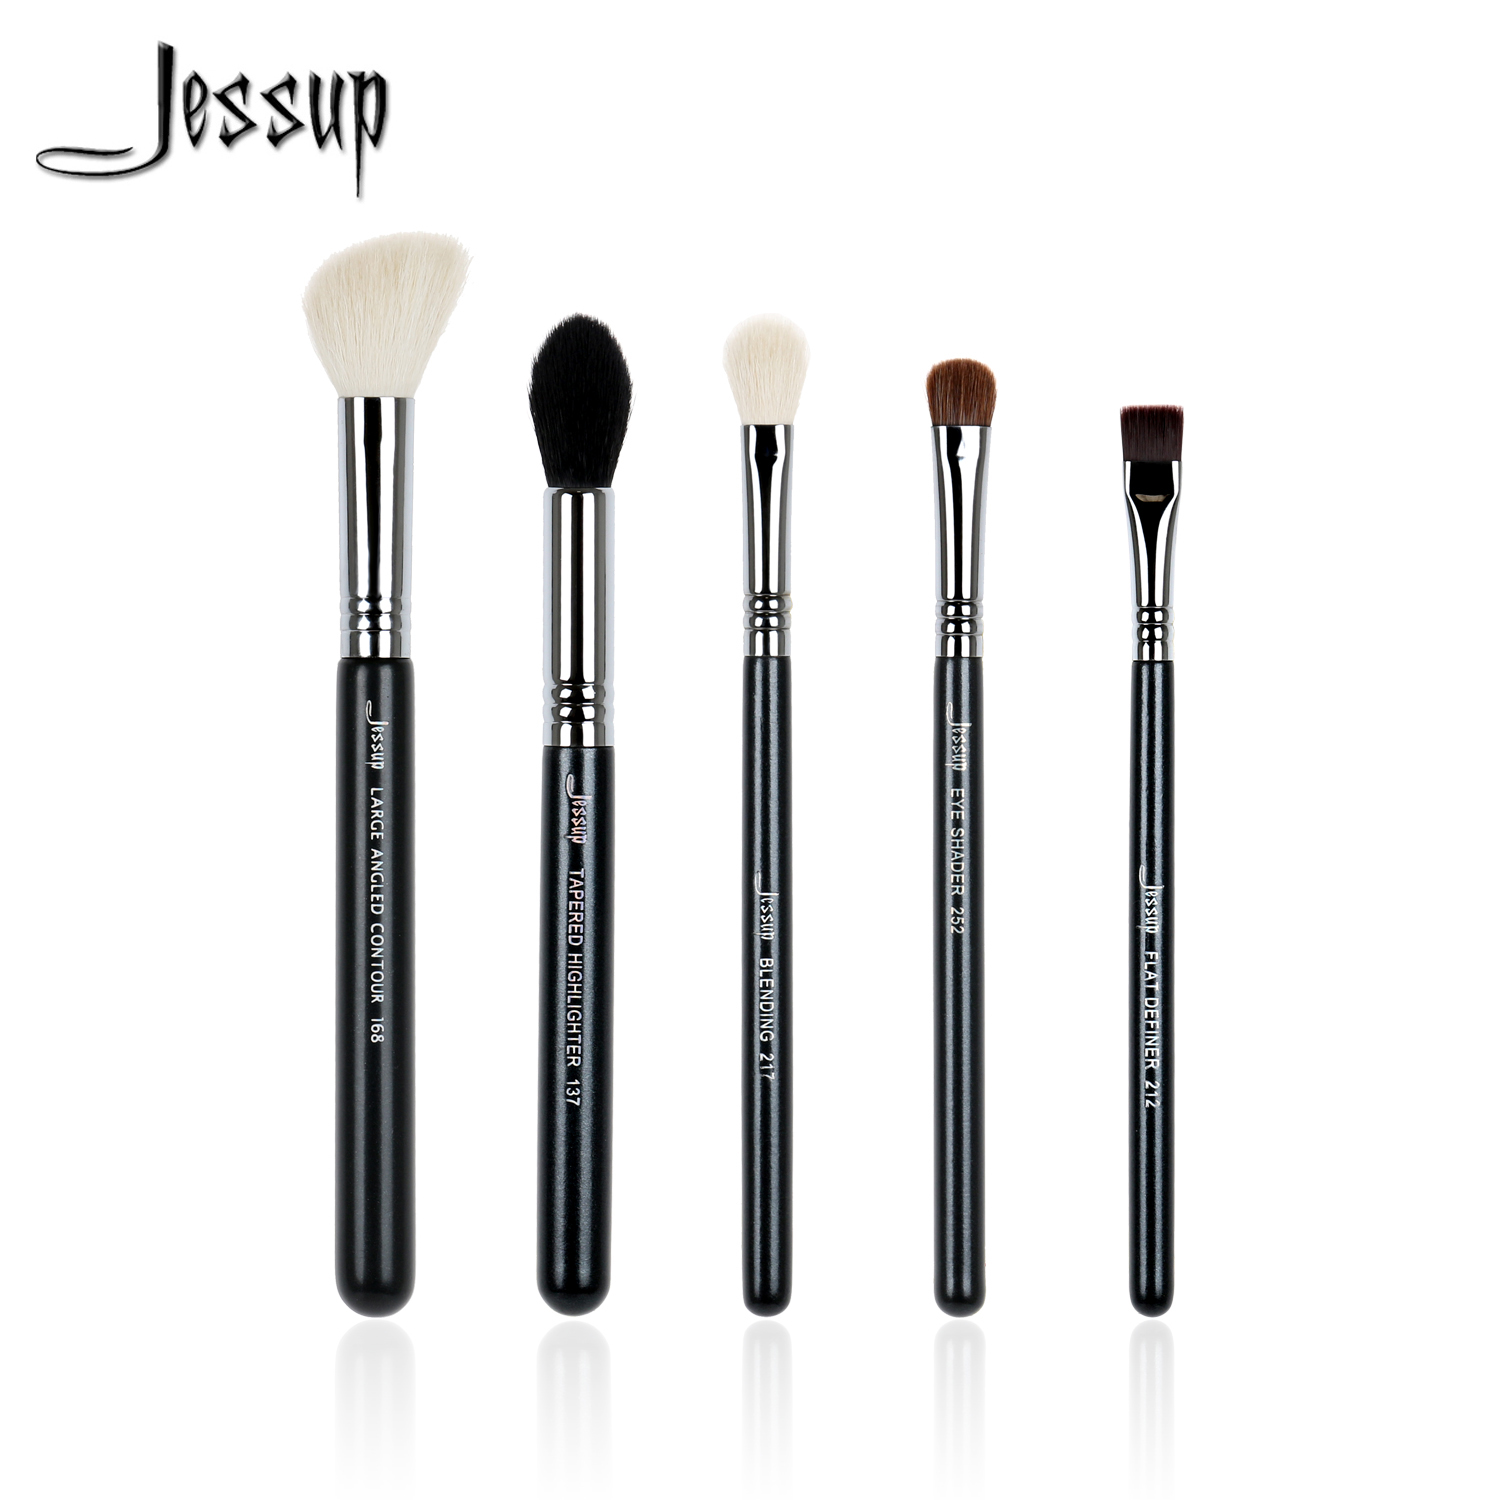 Jessup 5pcs High Quality Pro Makeup Brushes Set Foundation Blend Contour Eye shadow Nightlife Make up brush Tools beauty Kits creativity essential oil blend true botanical 100% pure and natural undiluted high quality therapeutic grade blend of rosemary clary sage hyssop marjoram cinnamon 5 ml